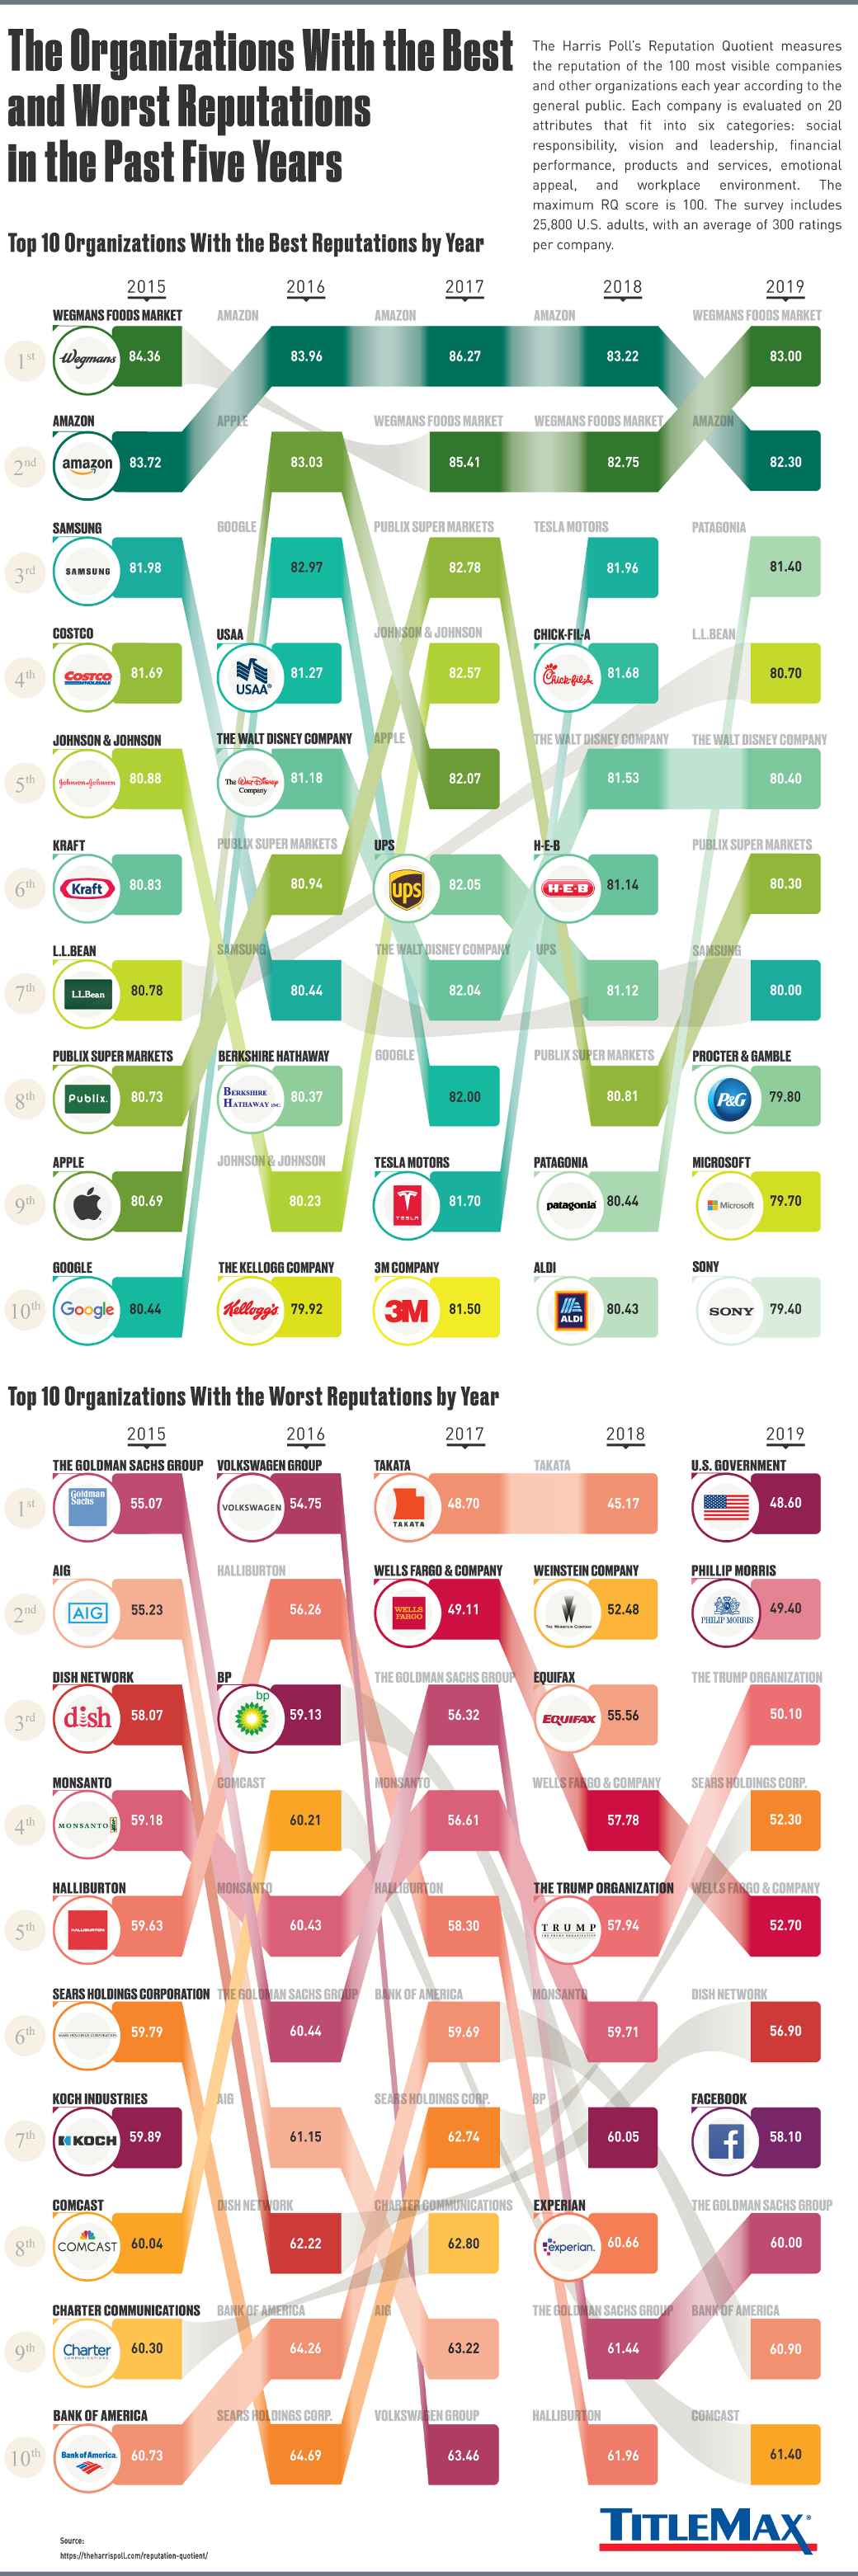 The Companies With the Best and Worst Reputations Over the Past 5 Years #infographic